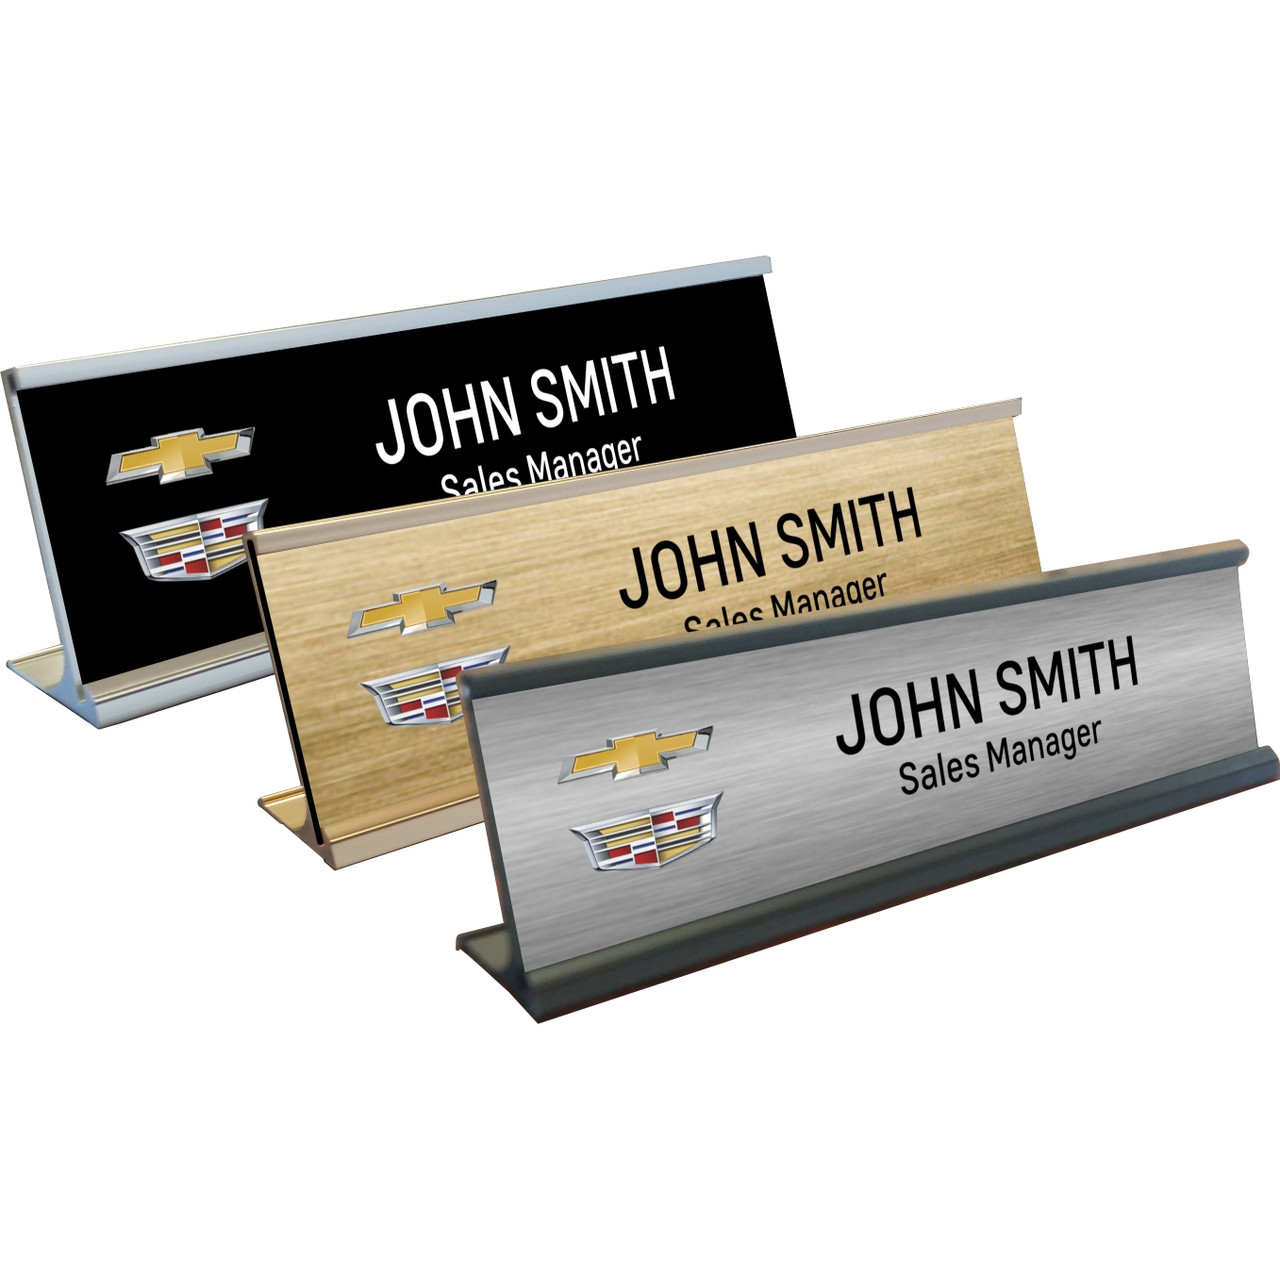 Chevrolet Cadillac Name Plates with Aluminum Desk Holder - Chevrolet ...